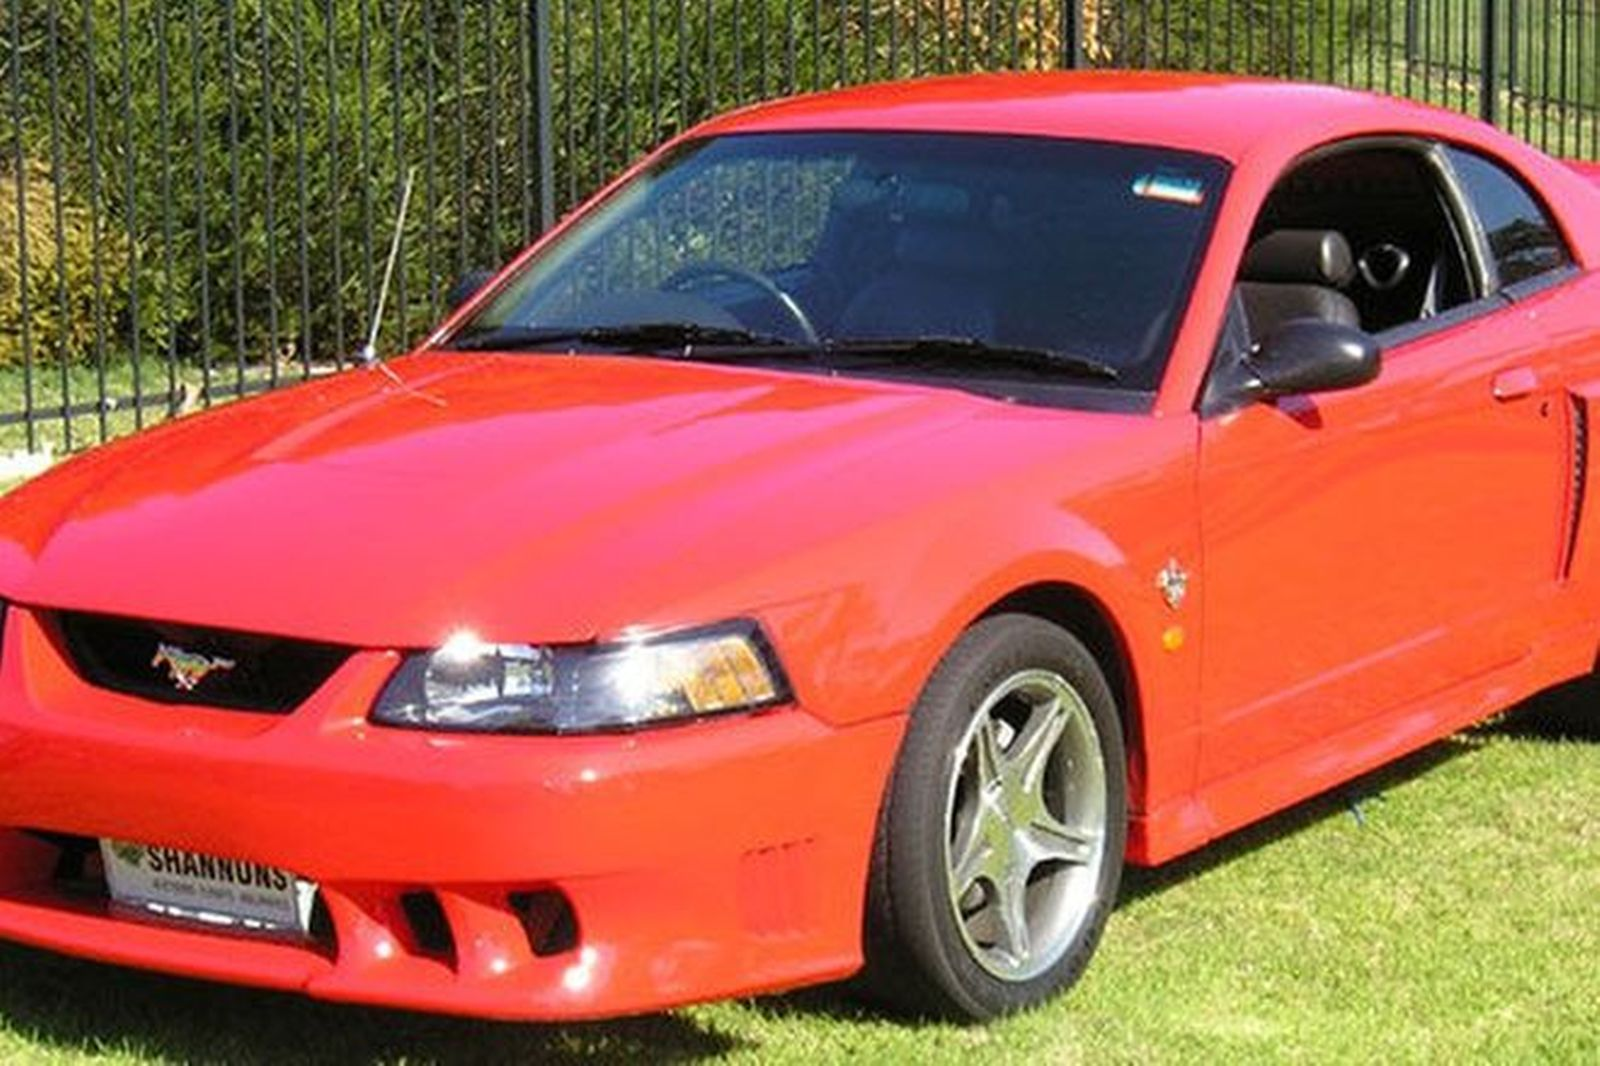 Ford mustang gt coupe rhd auctions lot 15 shannons